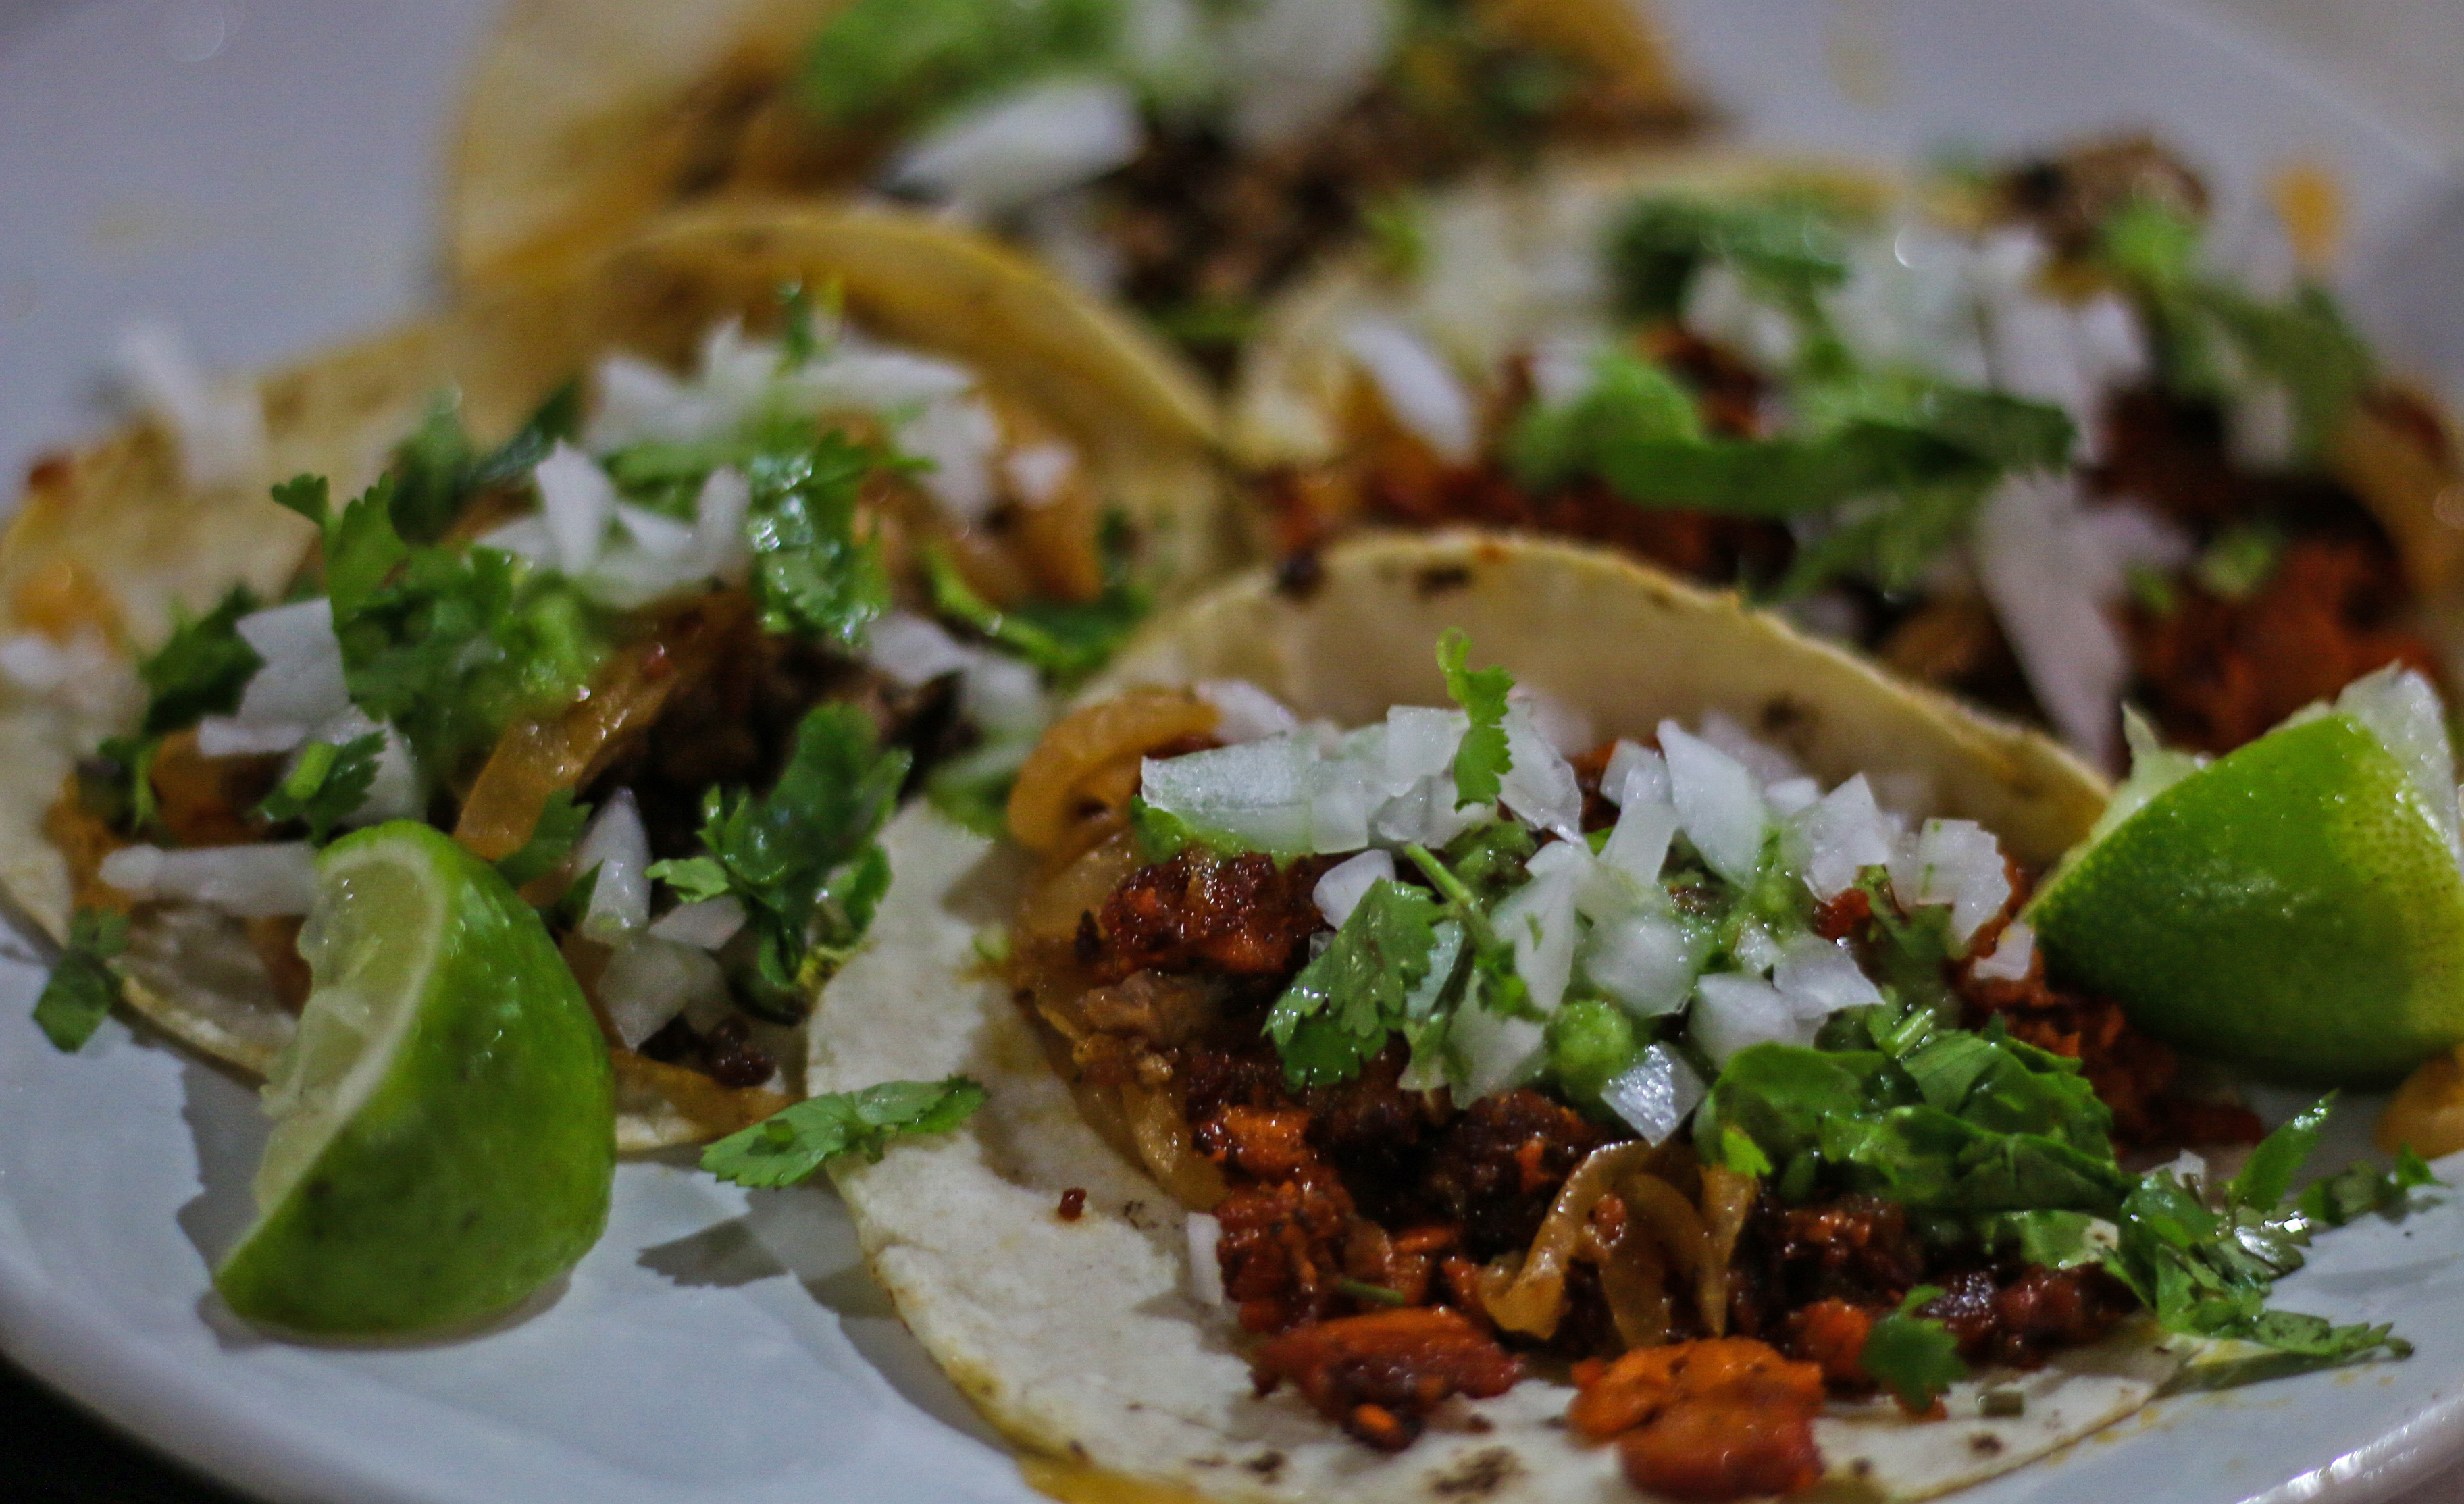 A plate of pork and beef tacos topped with onions and cilantro